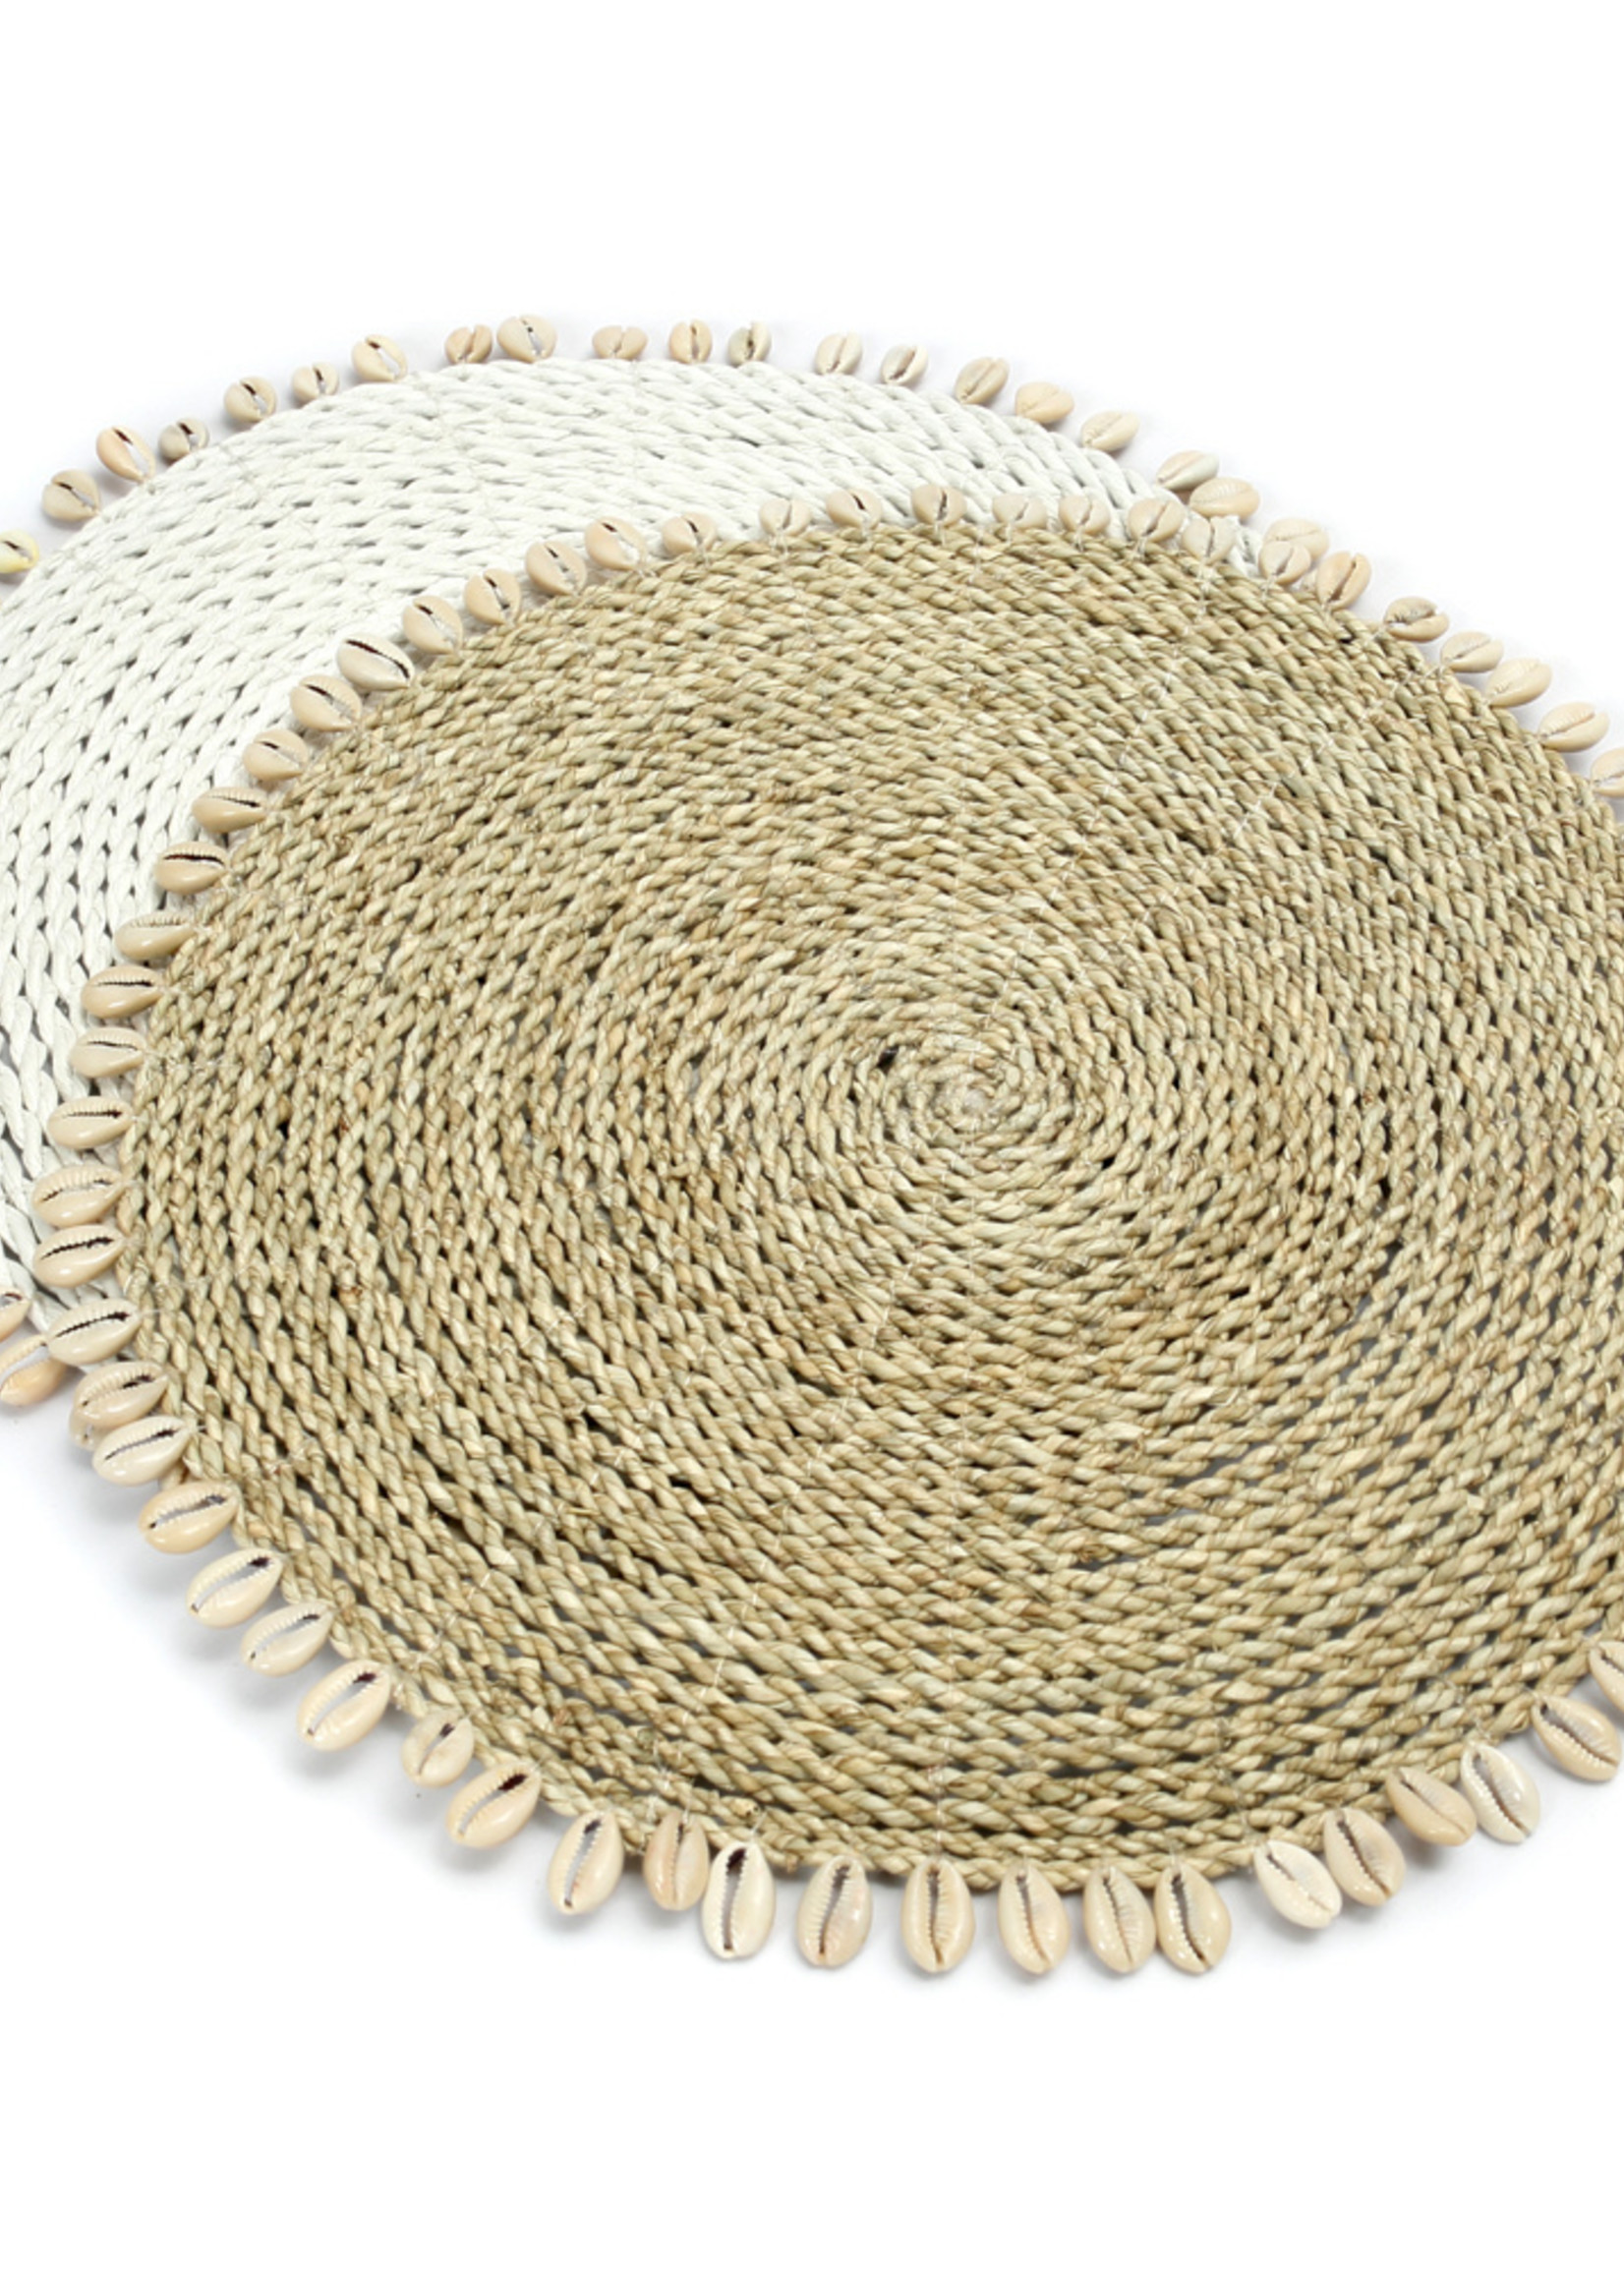 The Seagrass Shell Placemat - Natural